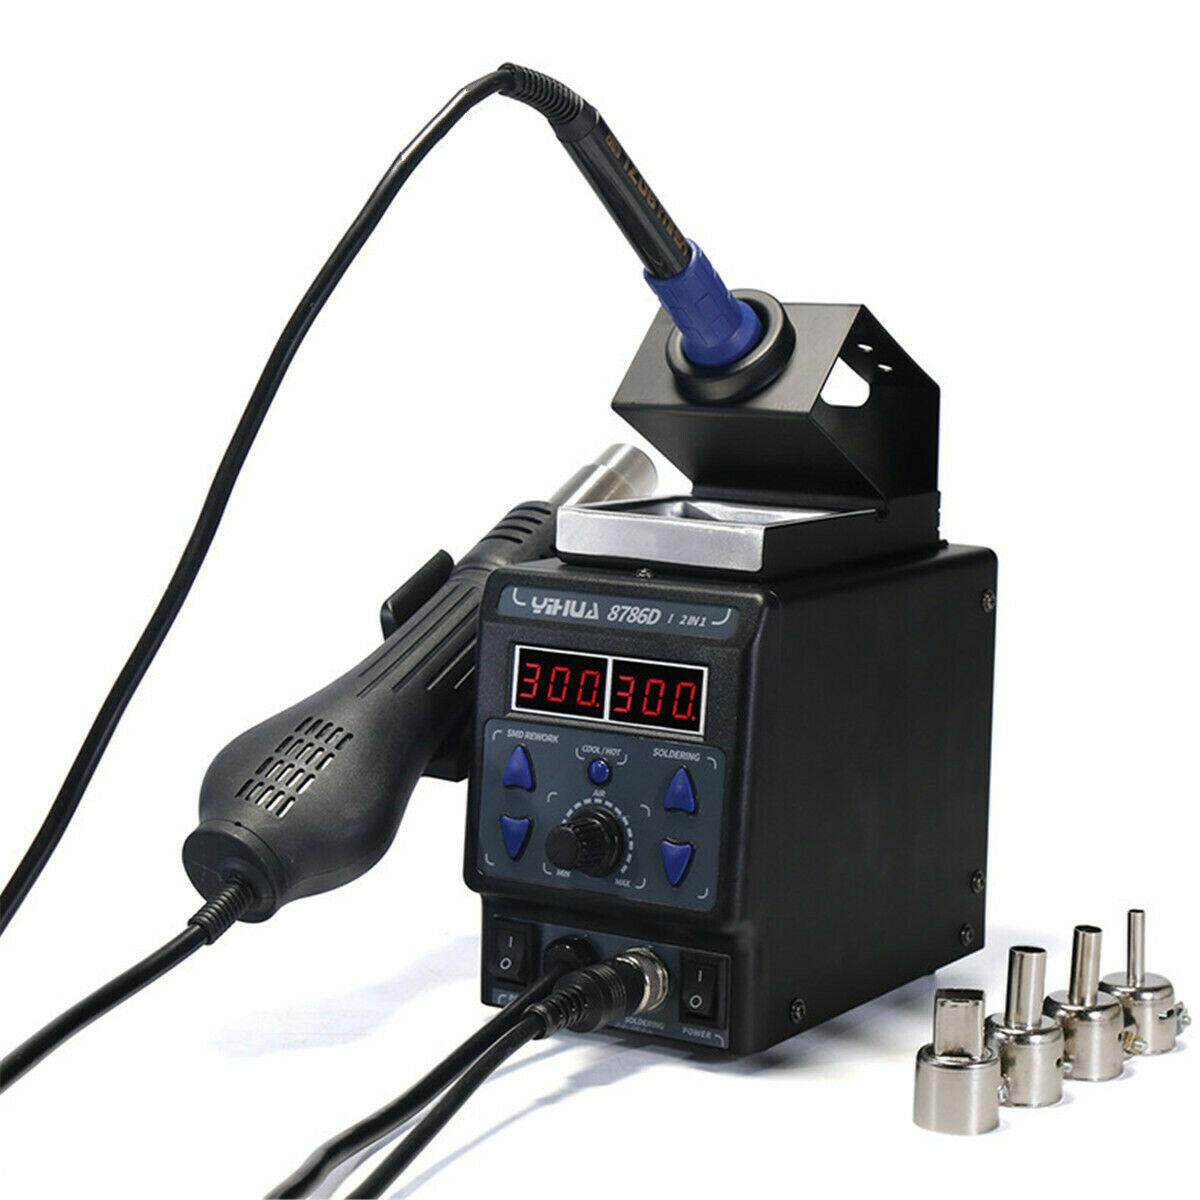 YIHUA 8786D Upgrade Rework Soldering Station 2 in 1 SMD